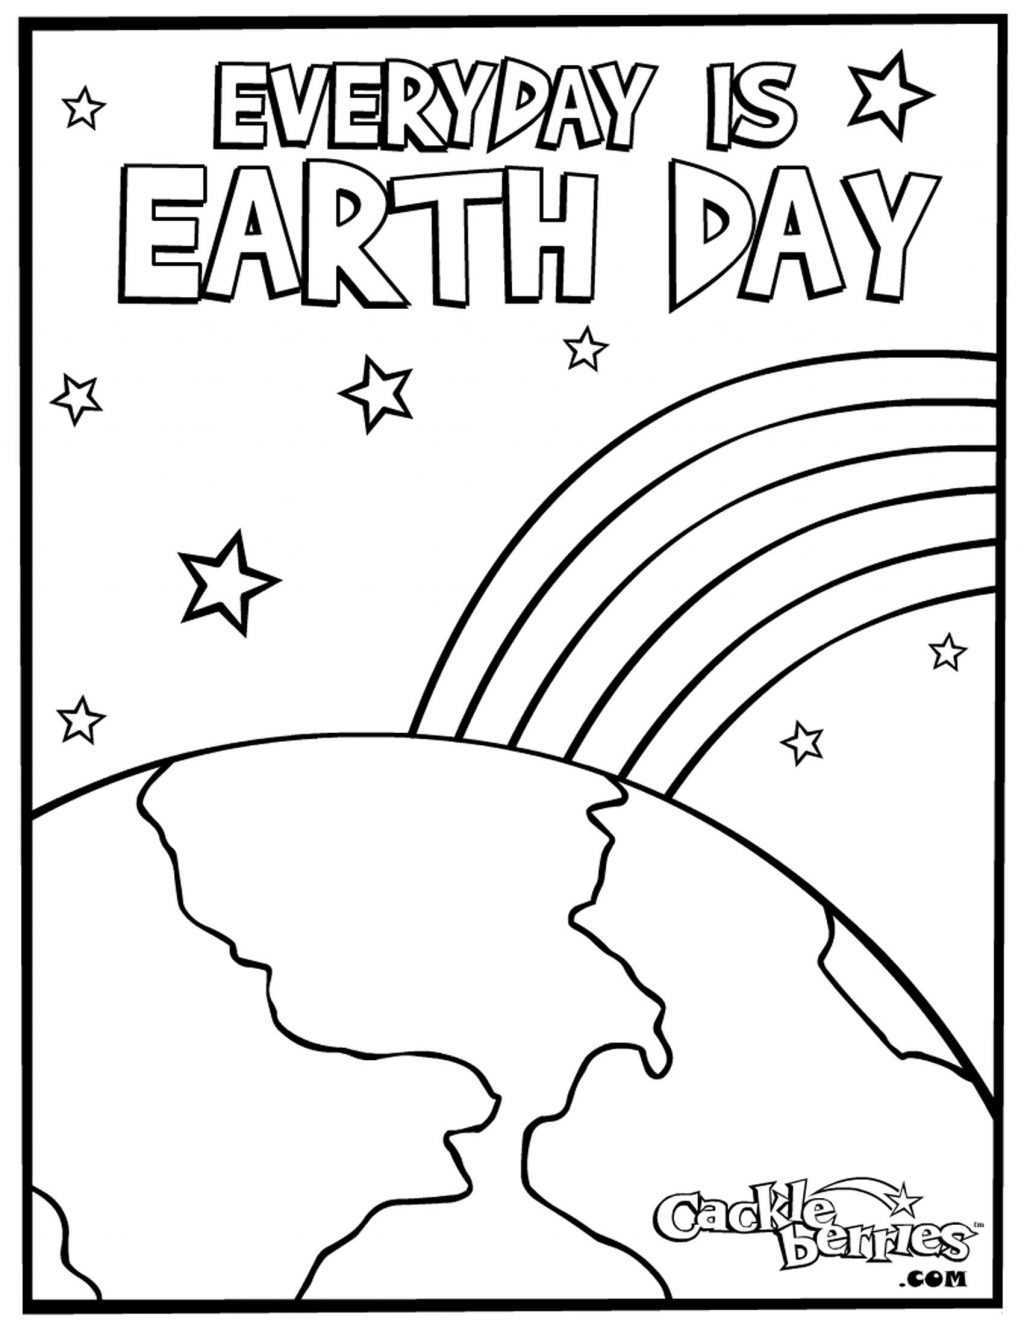 Coloring Pages ~ Coloring Pages Earth Day Printable With Trees - Free Printable Earth Pictures